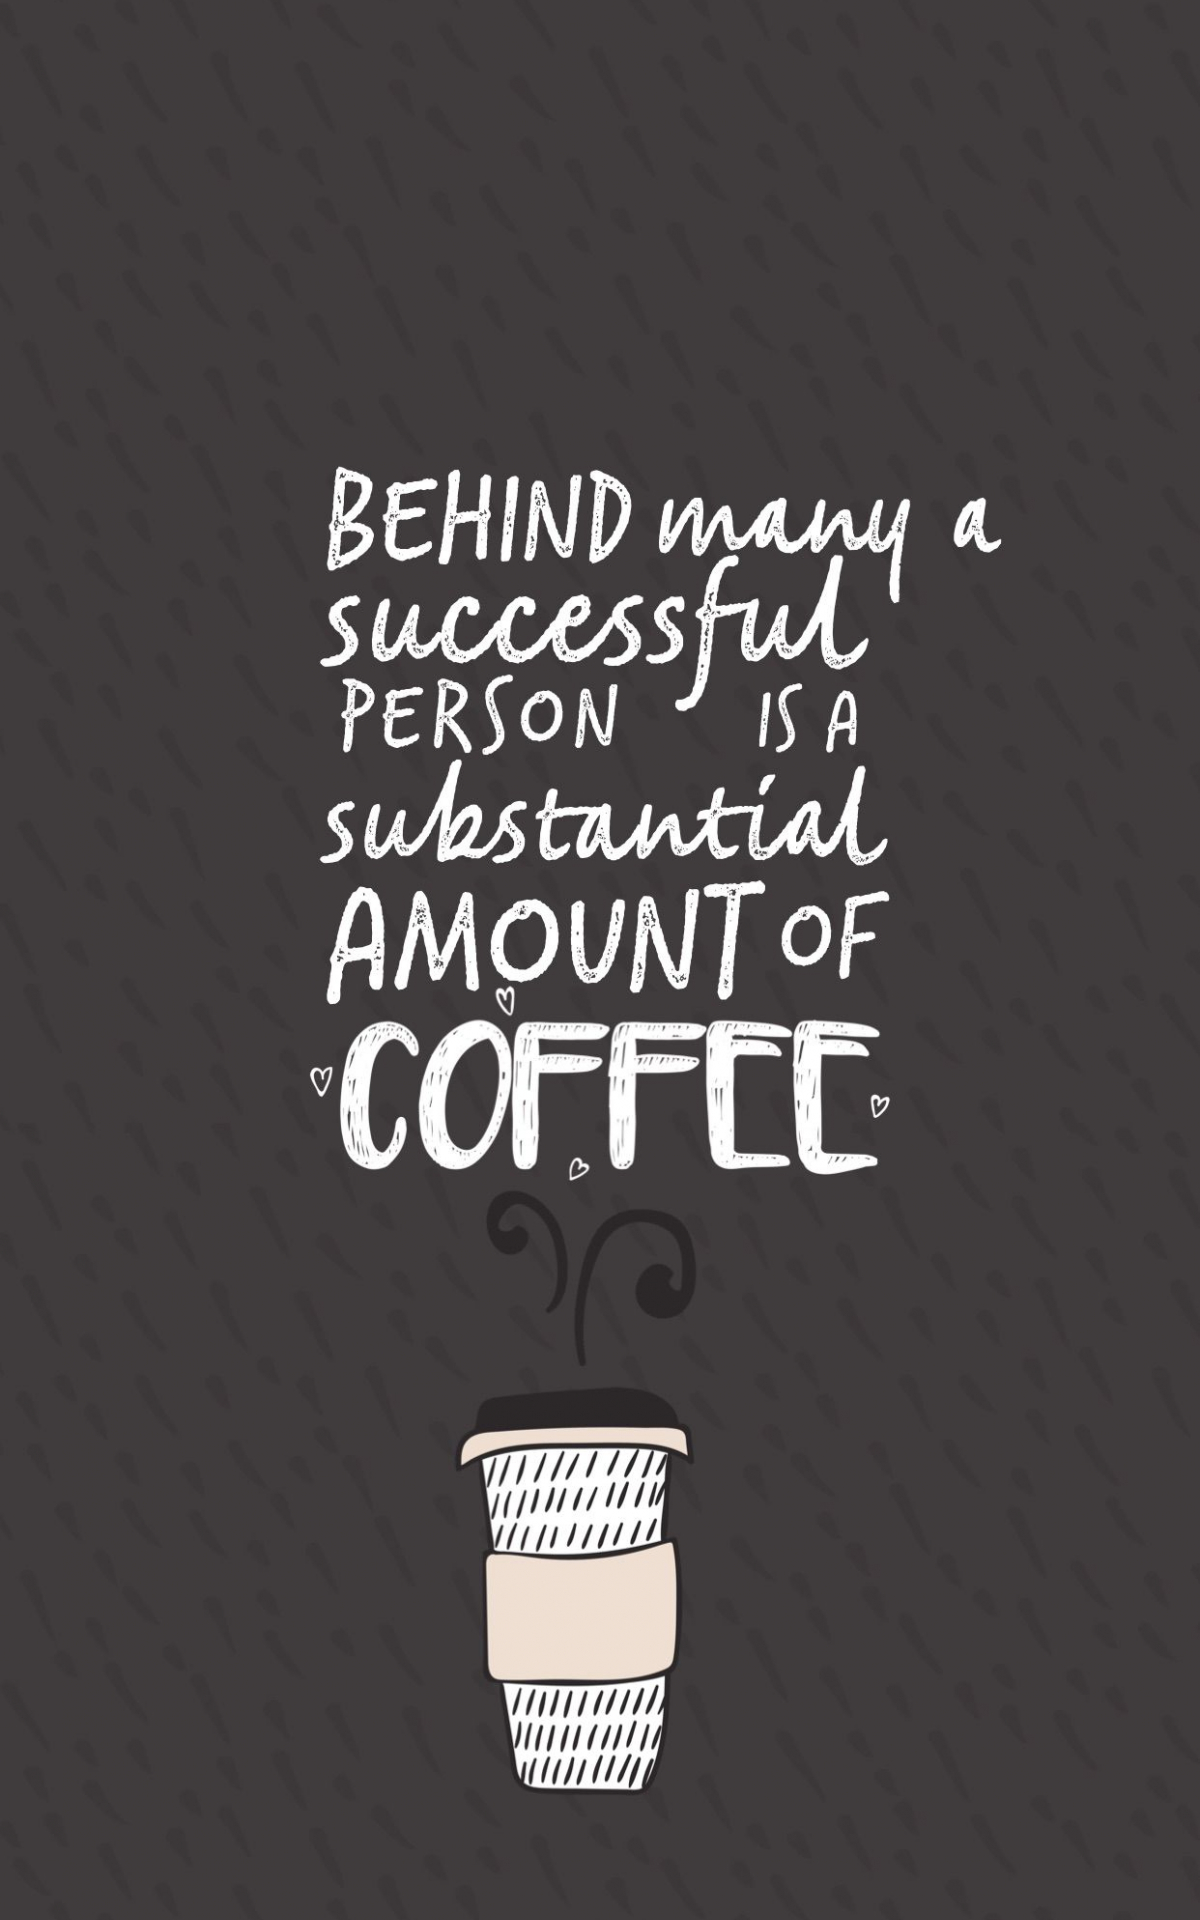 Free Download Behind Every Successful Person There Is A Substantial Amount Of 1242x2208 For Your Desktop Mobile Tablet Explore 14 Coffee Quotes Wallpapers Coffee Quotes Wallpapers Coffee Shop Wallpaper Coffee Wallpaper